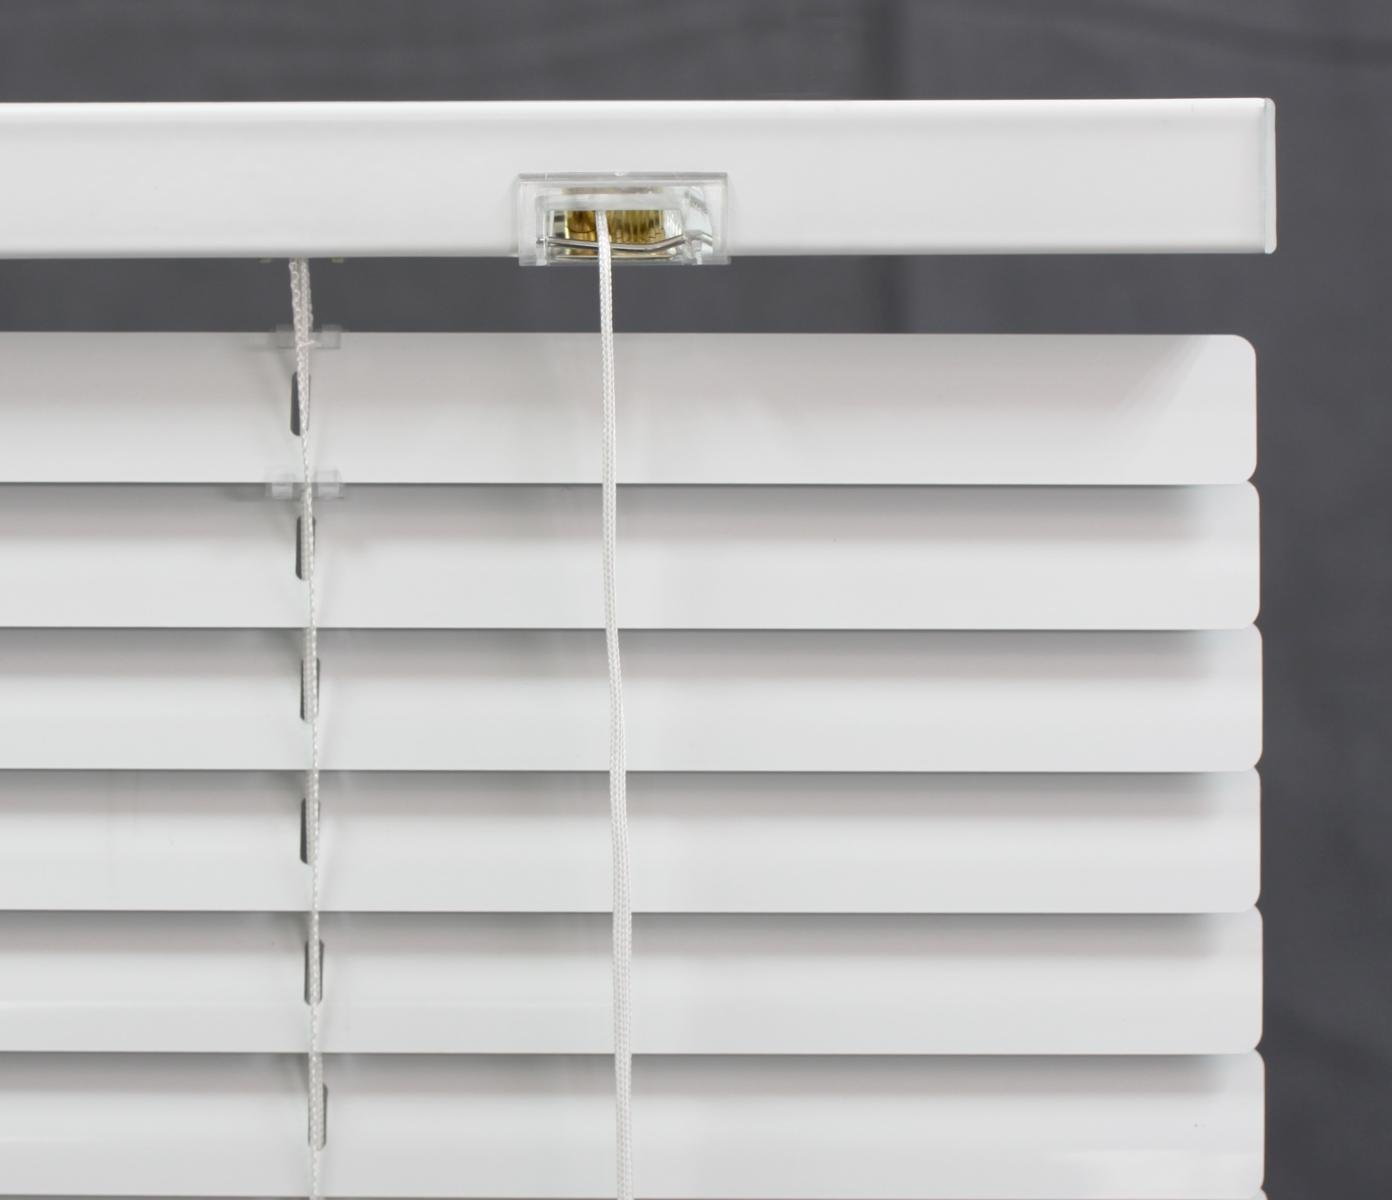 DEZ FURNISHINGS 29247 1-Inch Aluminum Blind, 29-Inch W X 36-Inch L, White by DEZ Furnishings (Image #3)